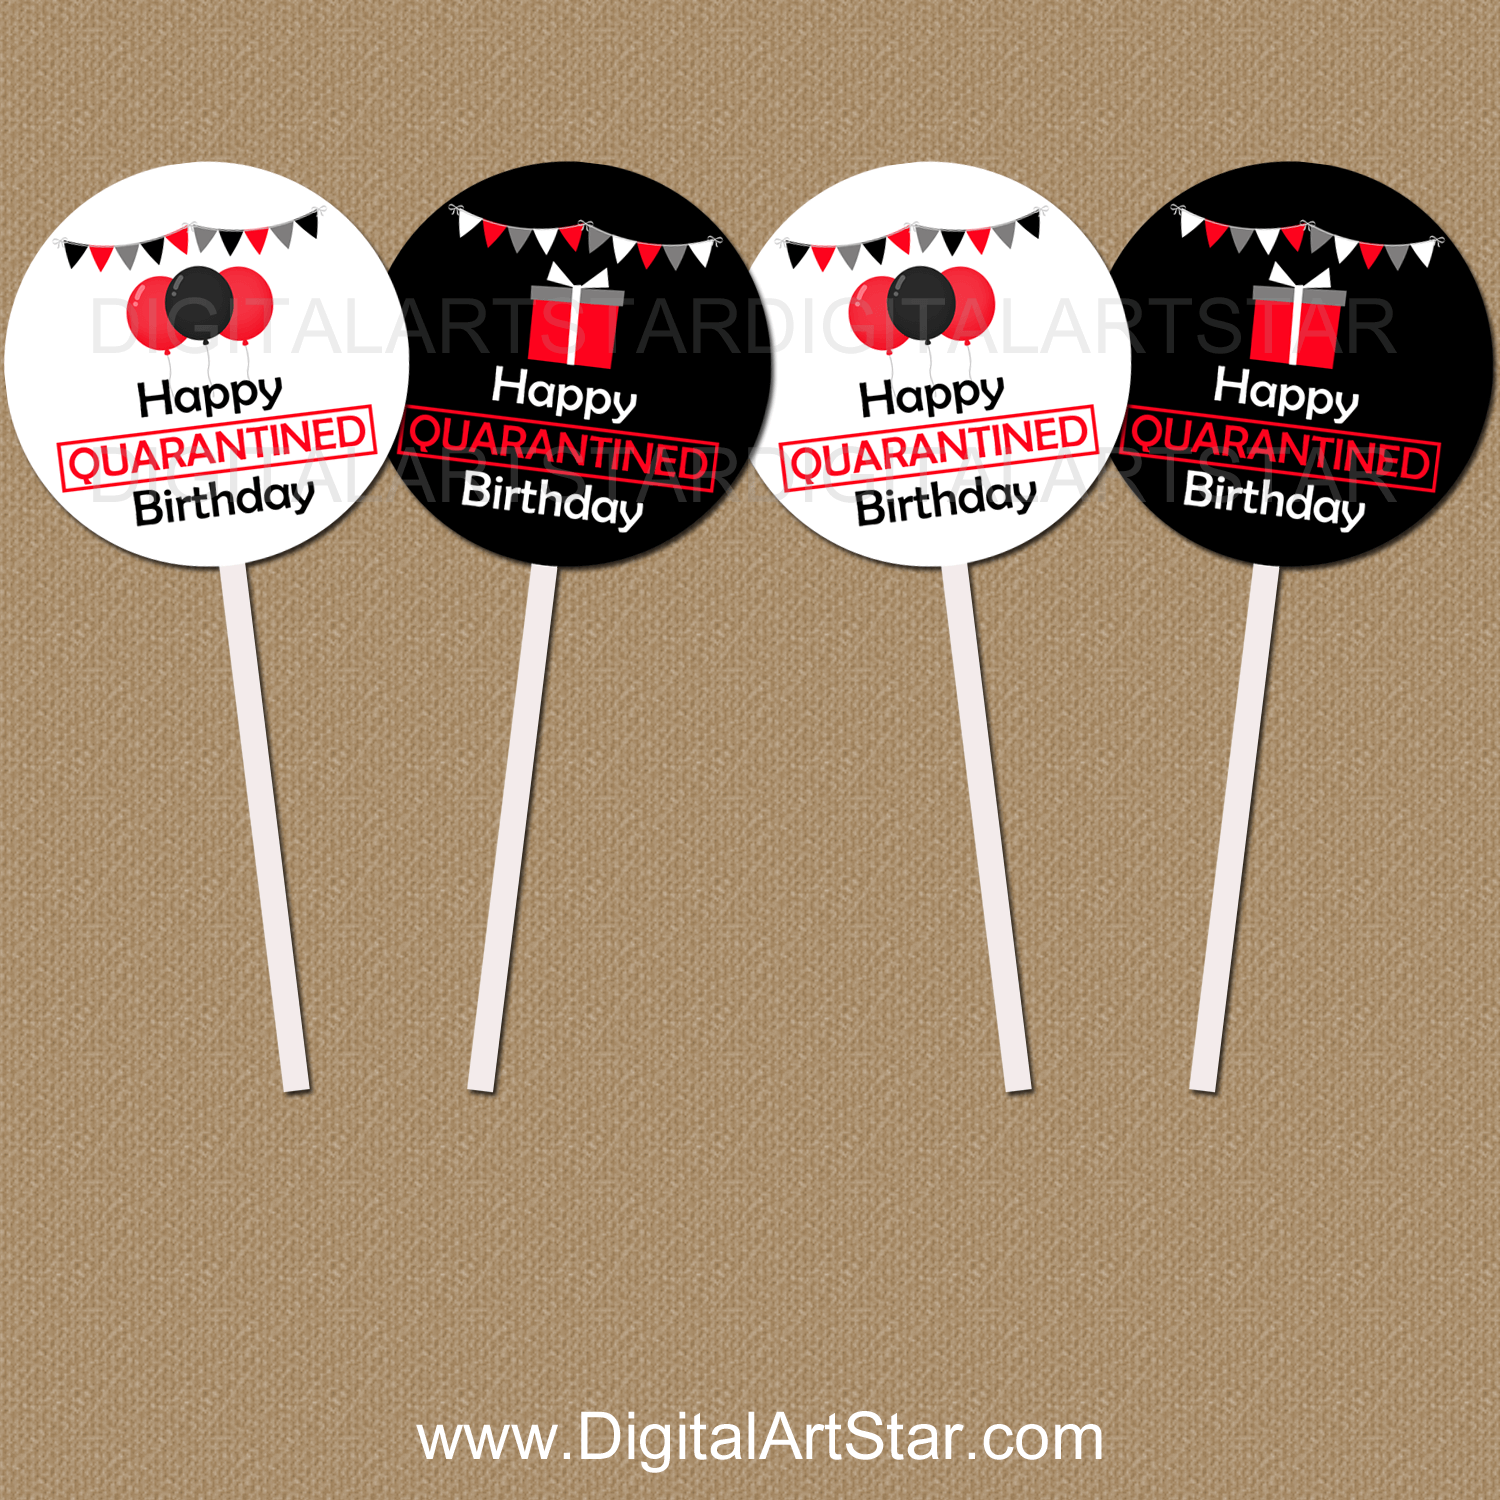 Red Black and White Quarantine Birthday Cupcake Toppers